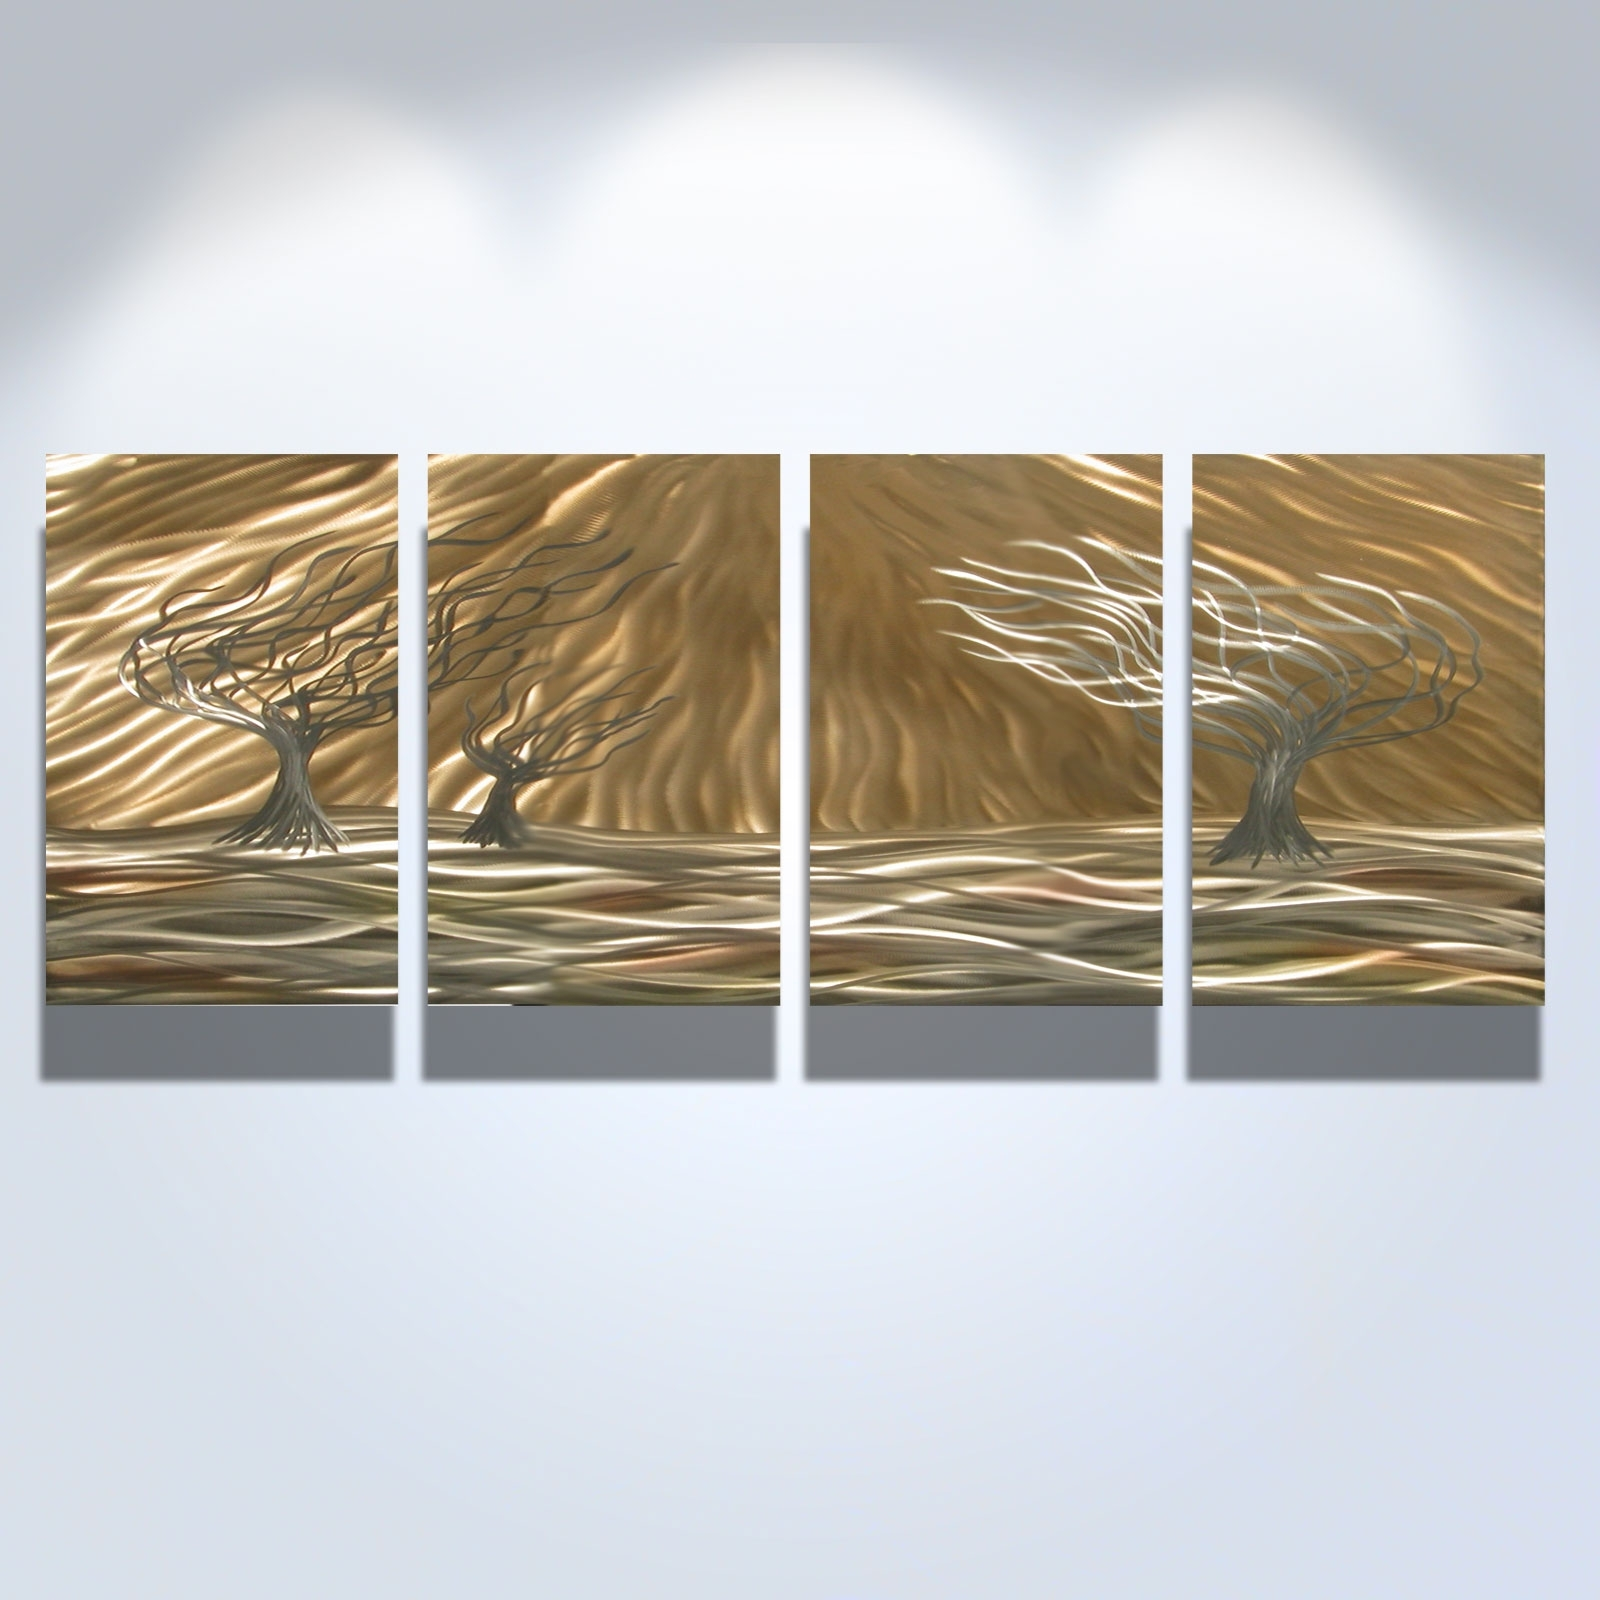 Contemporary Abstract Wall Art Throughout Popular 3 Trees 4 Panel – Abstract Metal Wall Art Contemporary Modern (View 3 of 15)